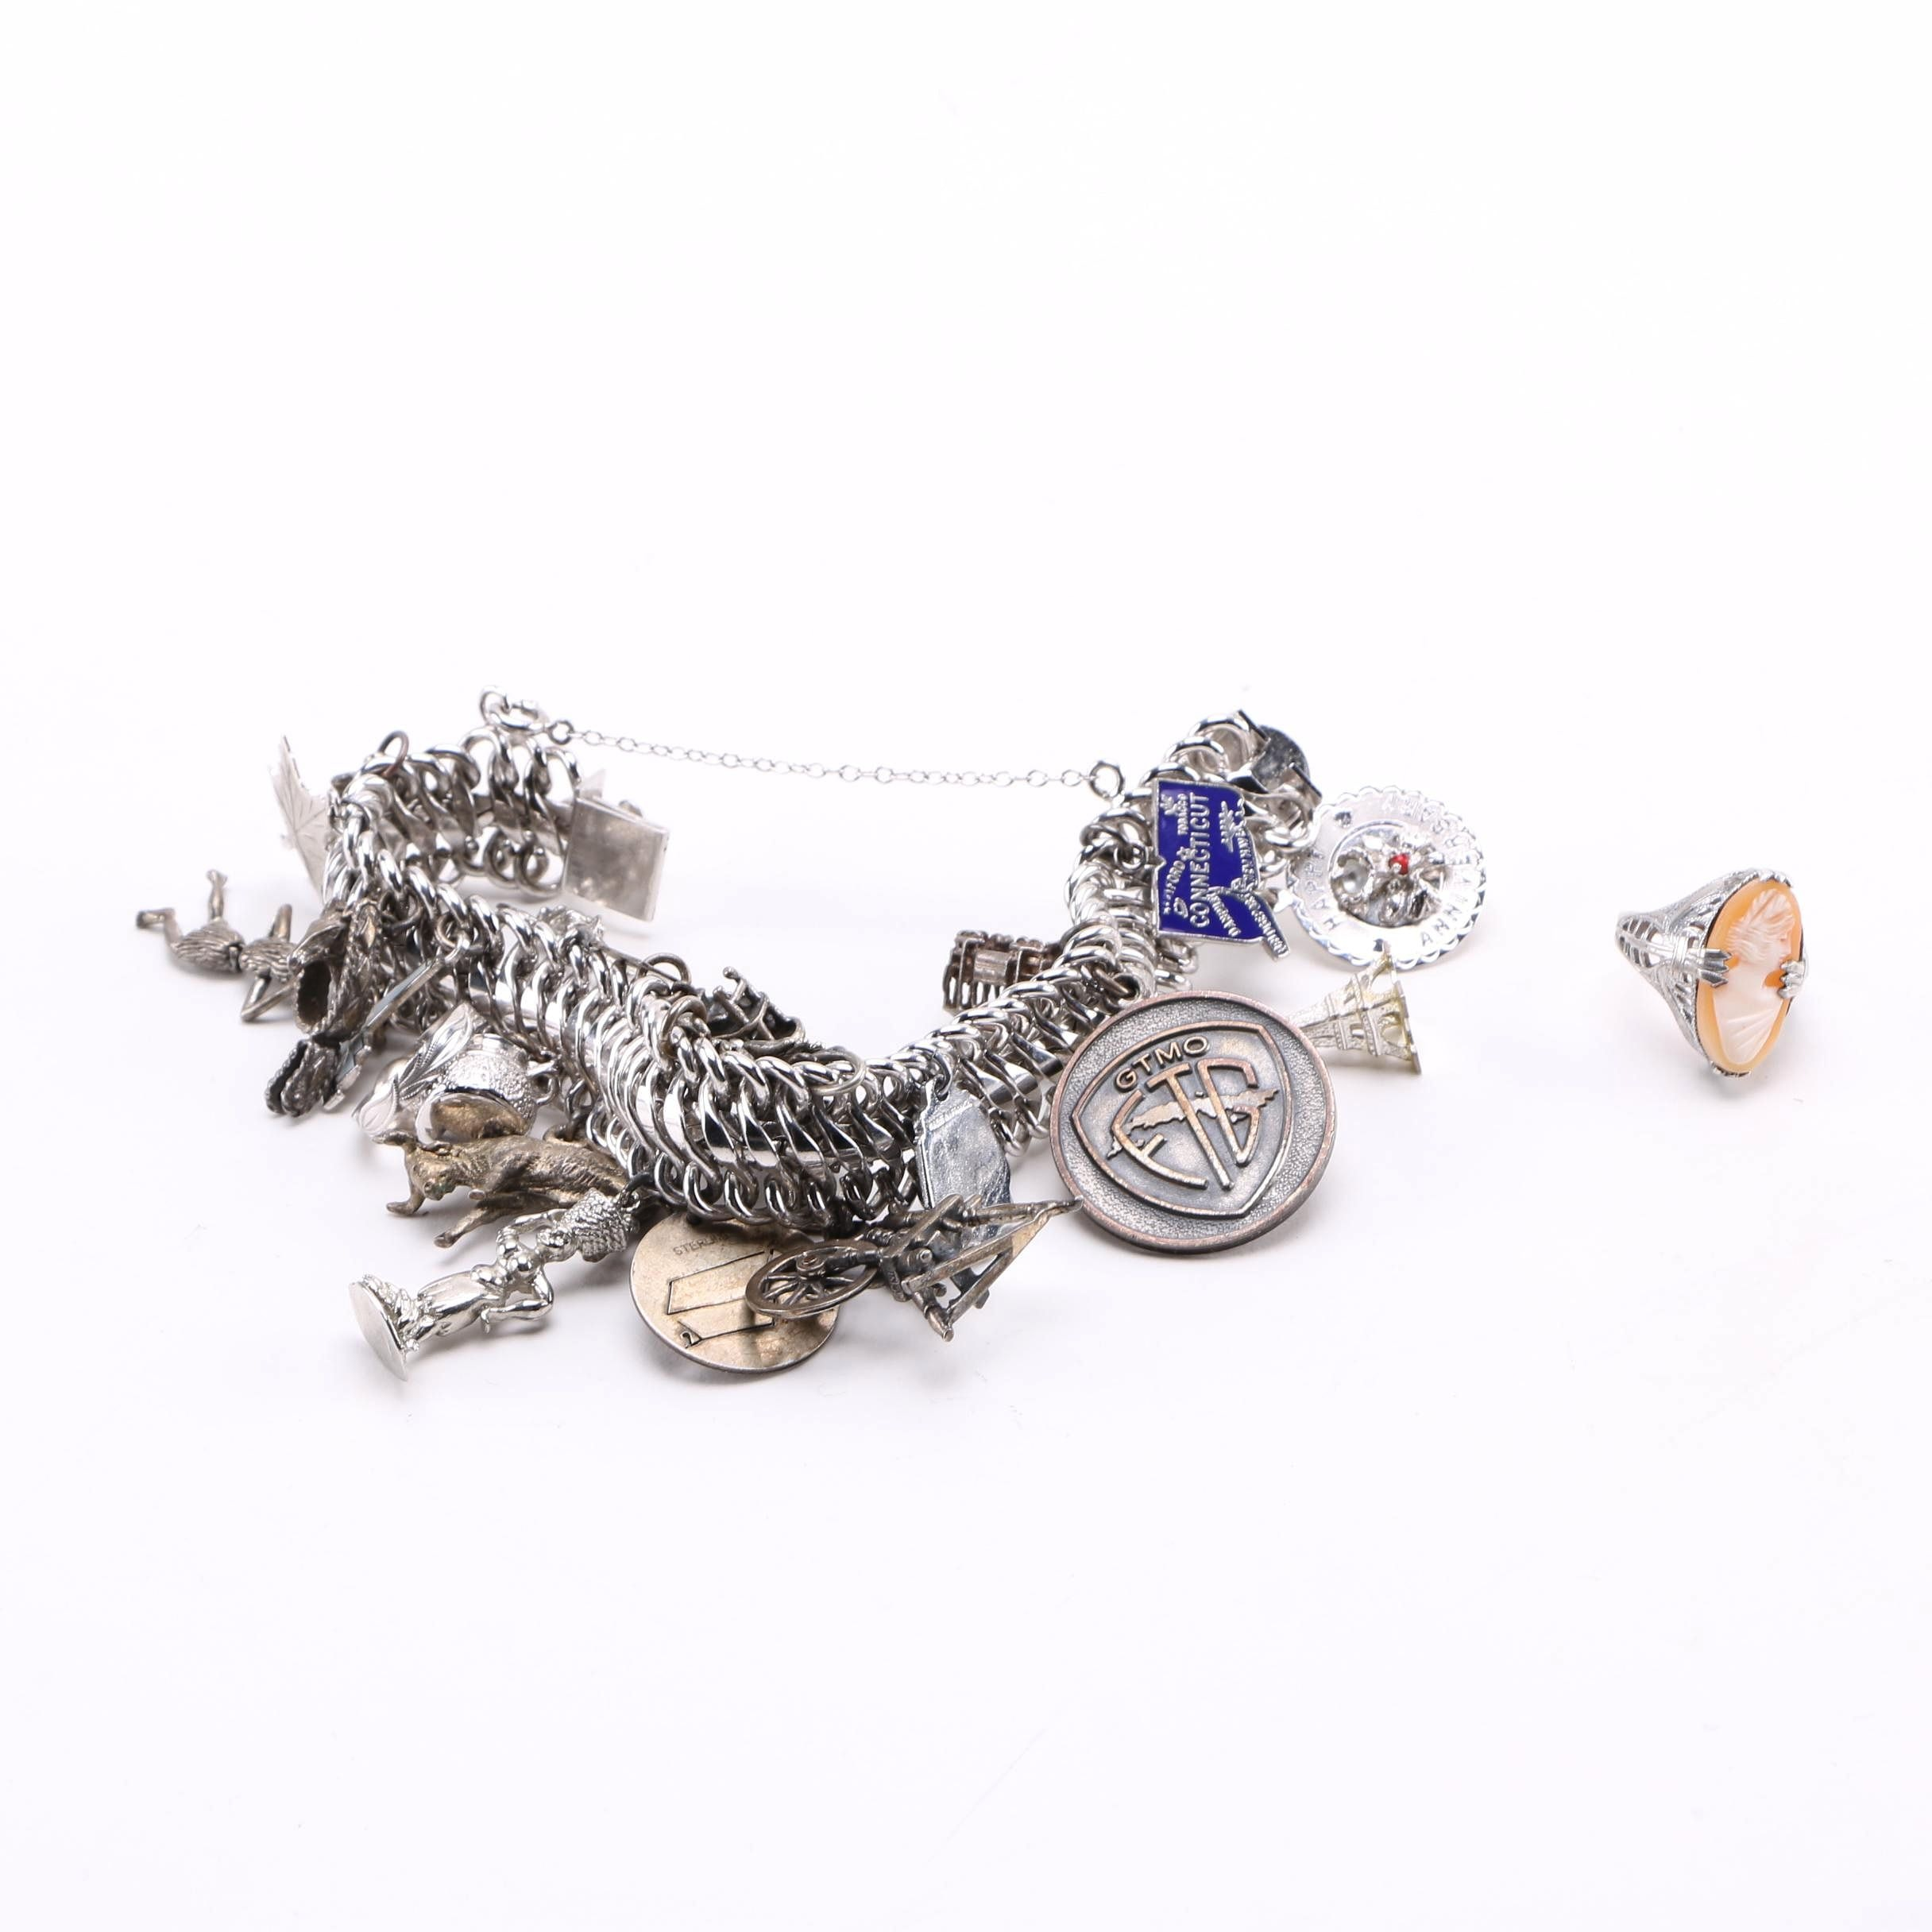 Elco Sterling Silver Charm Bracelet and Cameo Ring